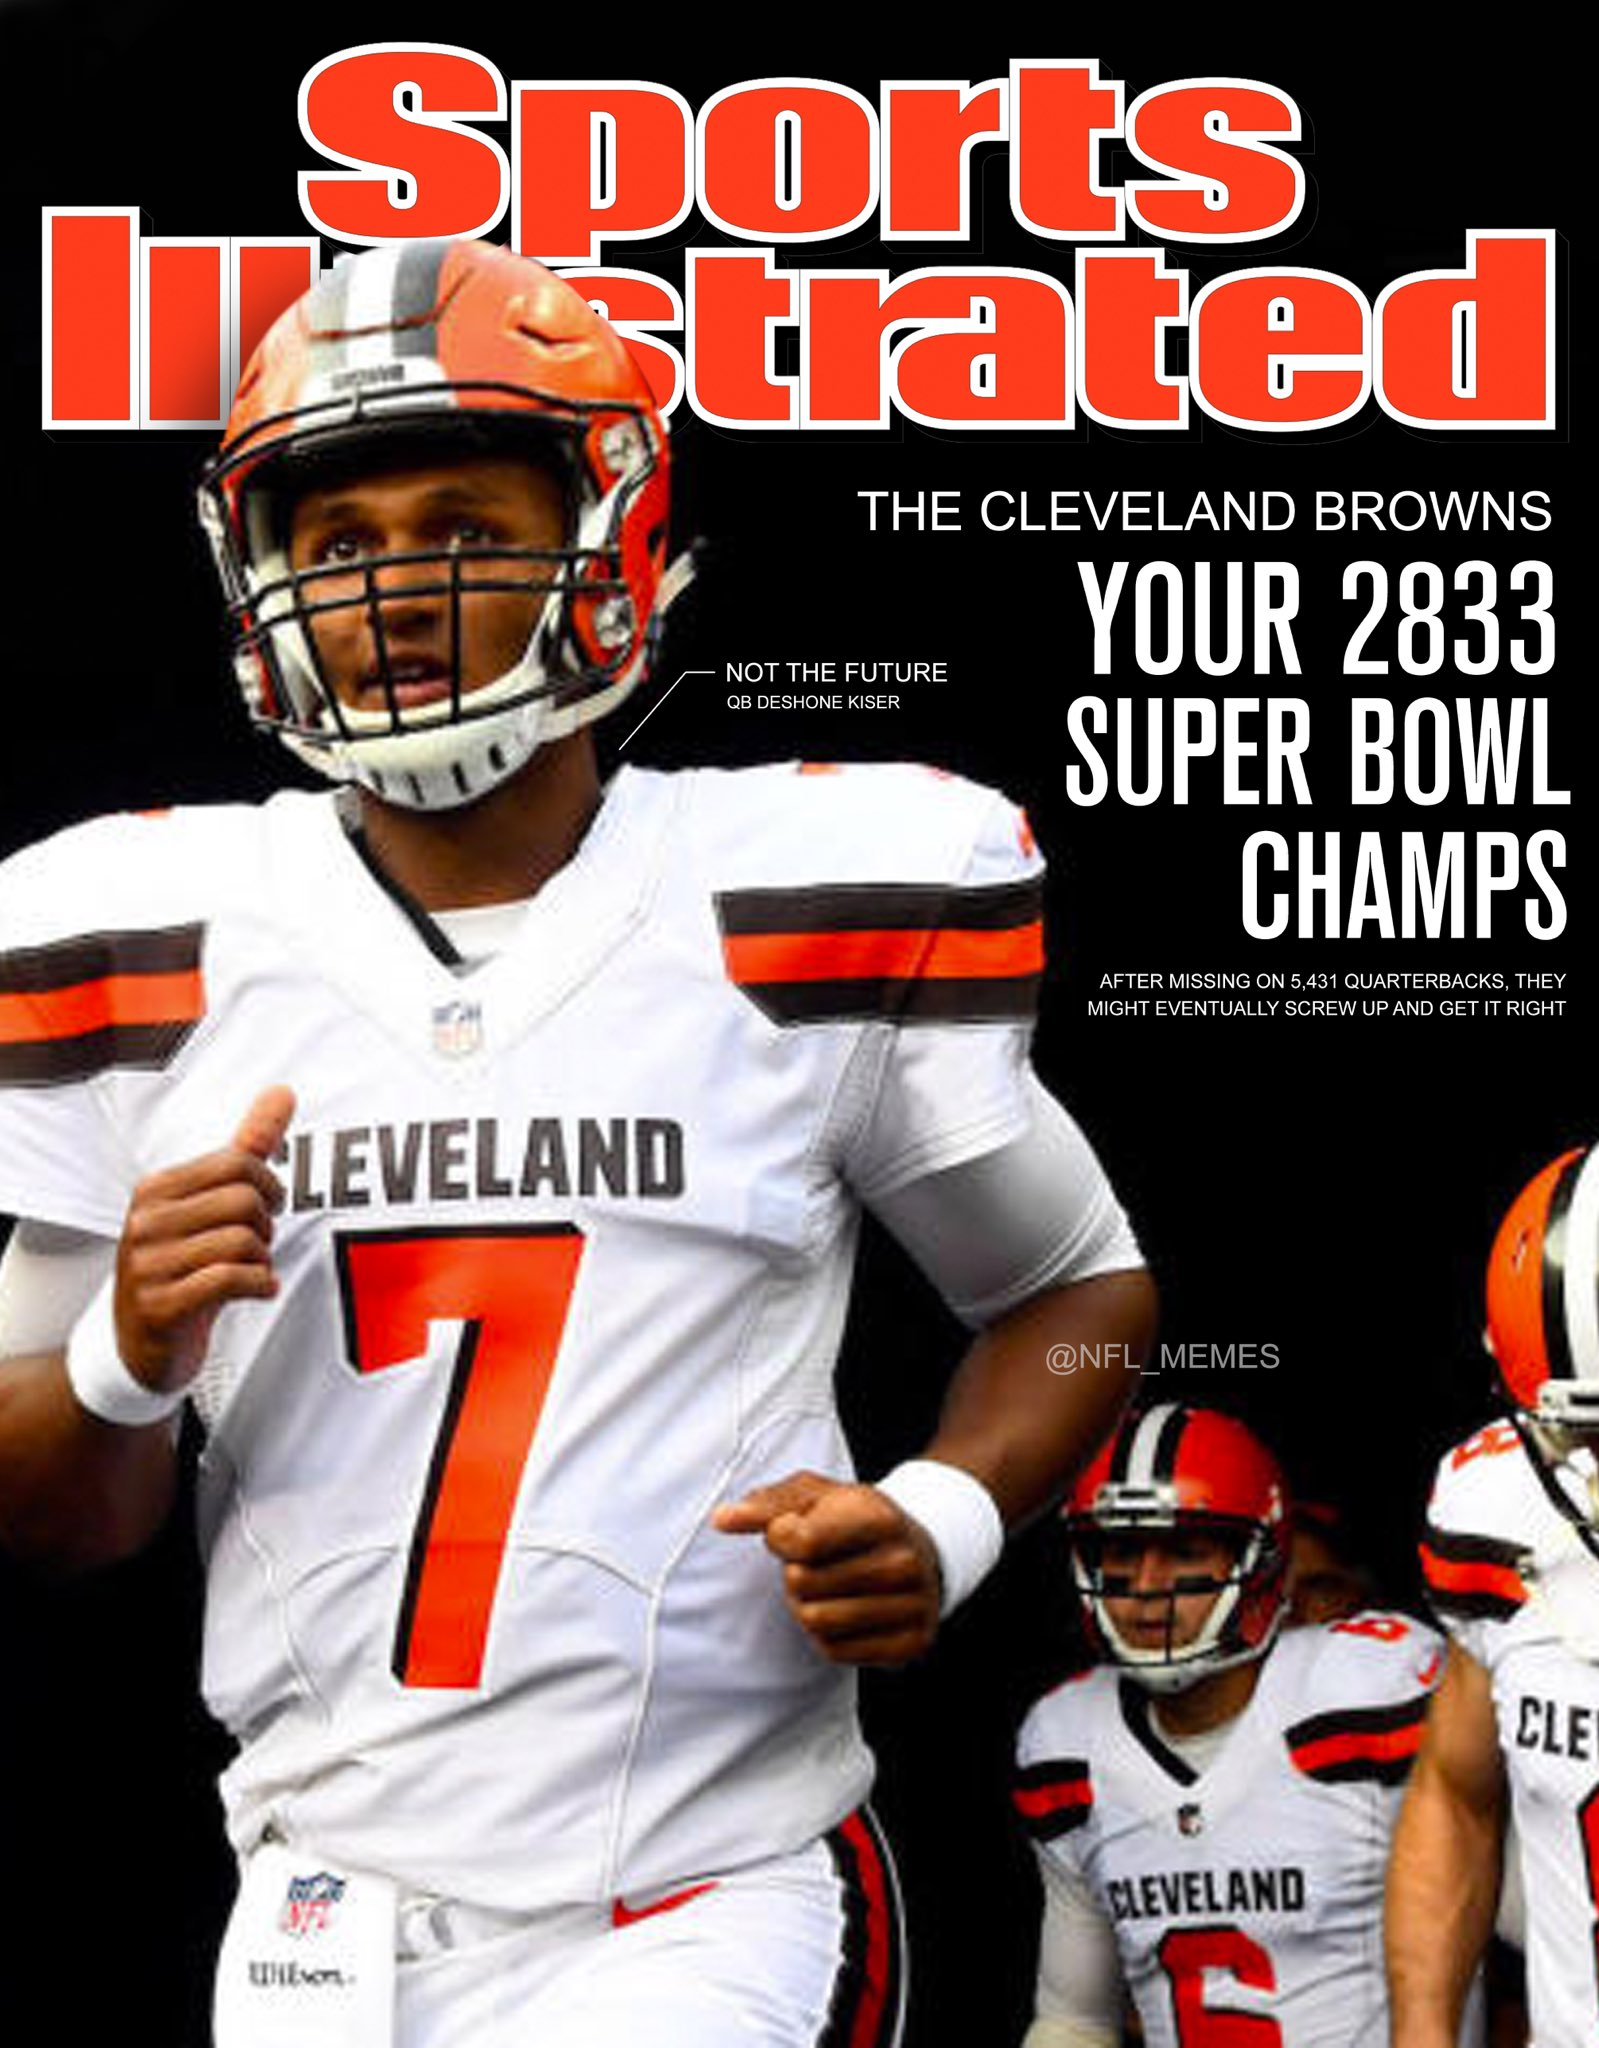 Nfl Memes On Twitter First Look Sports Illustrated Makes Prediction For The Cleveland Browns After Getting Astros Right